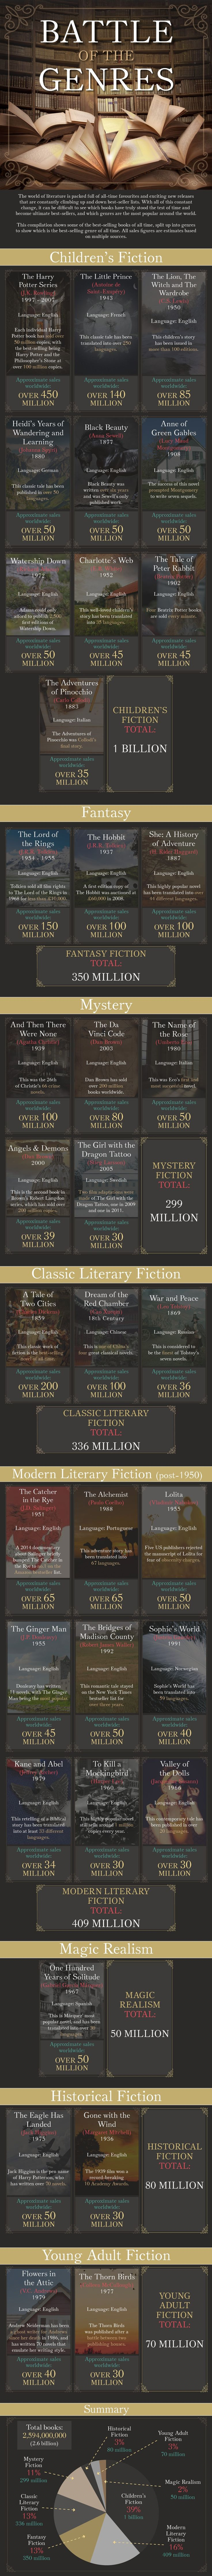 The new infographic not only lists best-selling books of all time, but also estimates sales in most popular book genres.